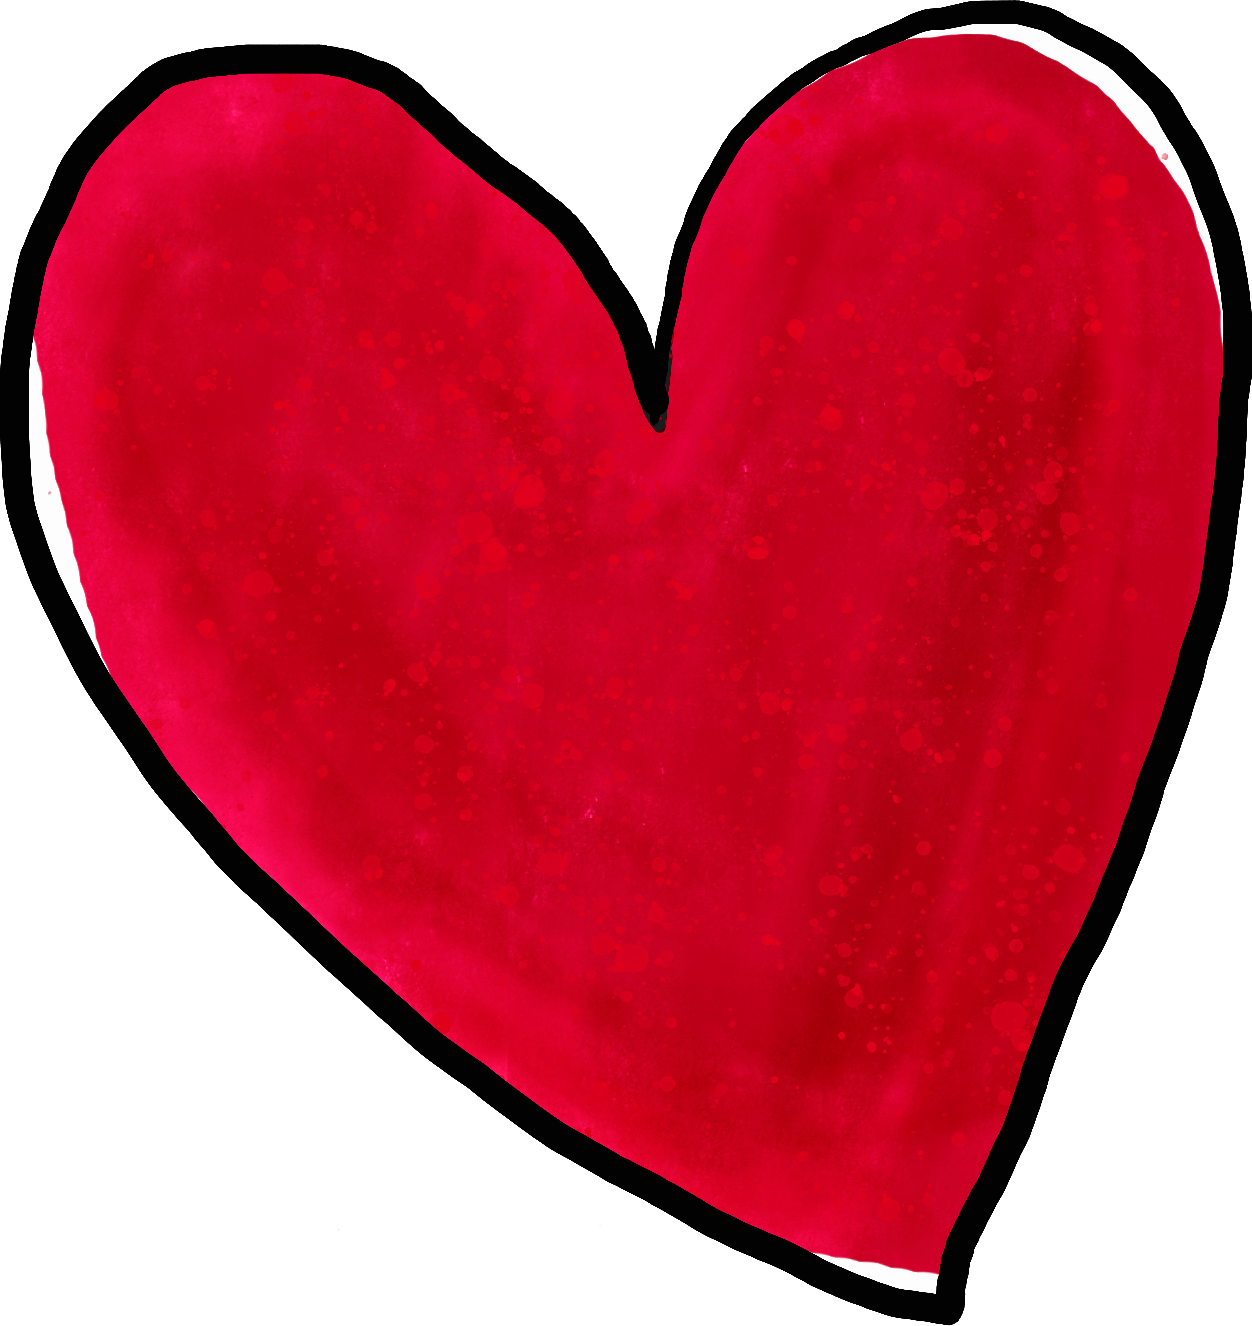 Heart watercolor png. Crimson in digital sproutinginsecond